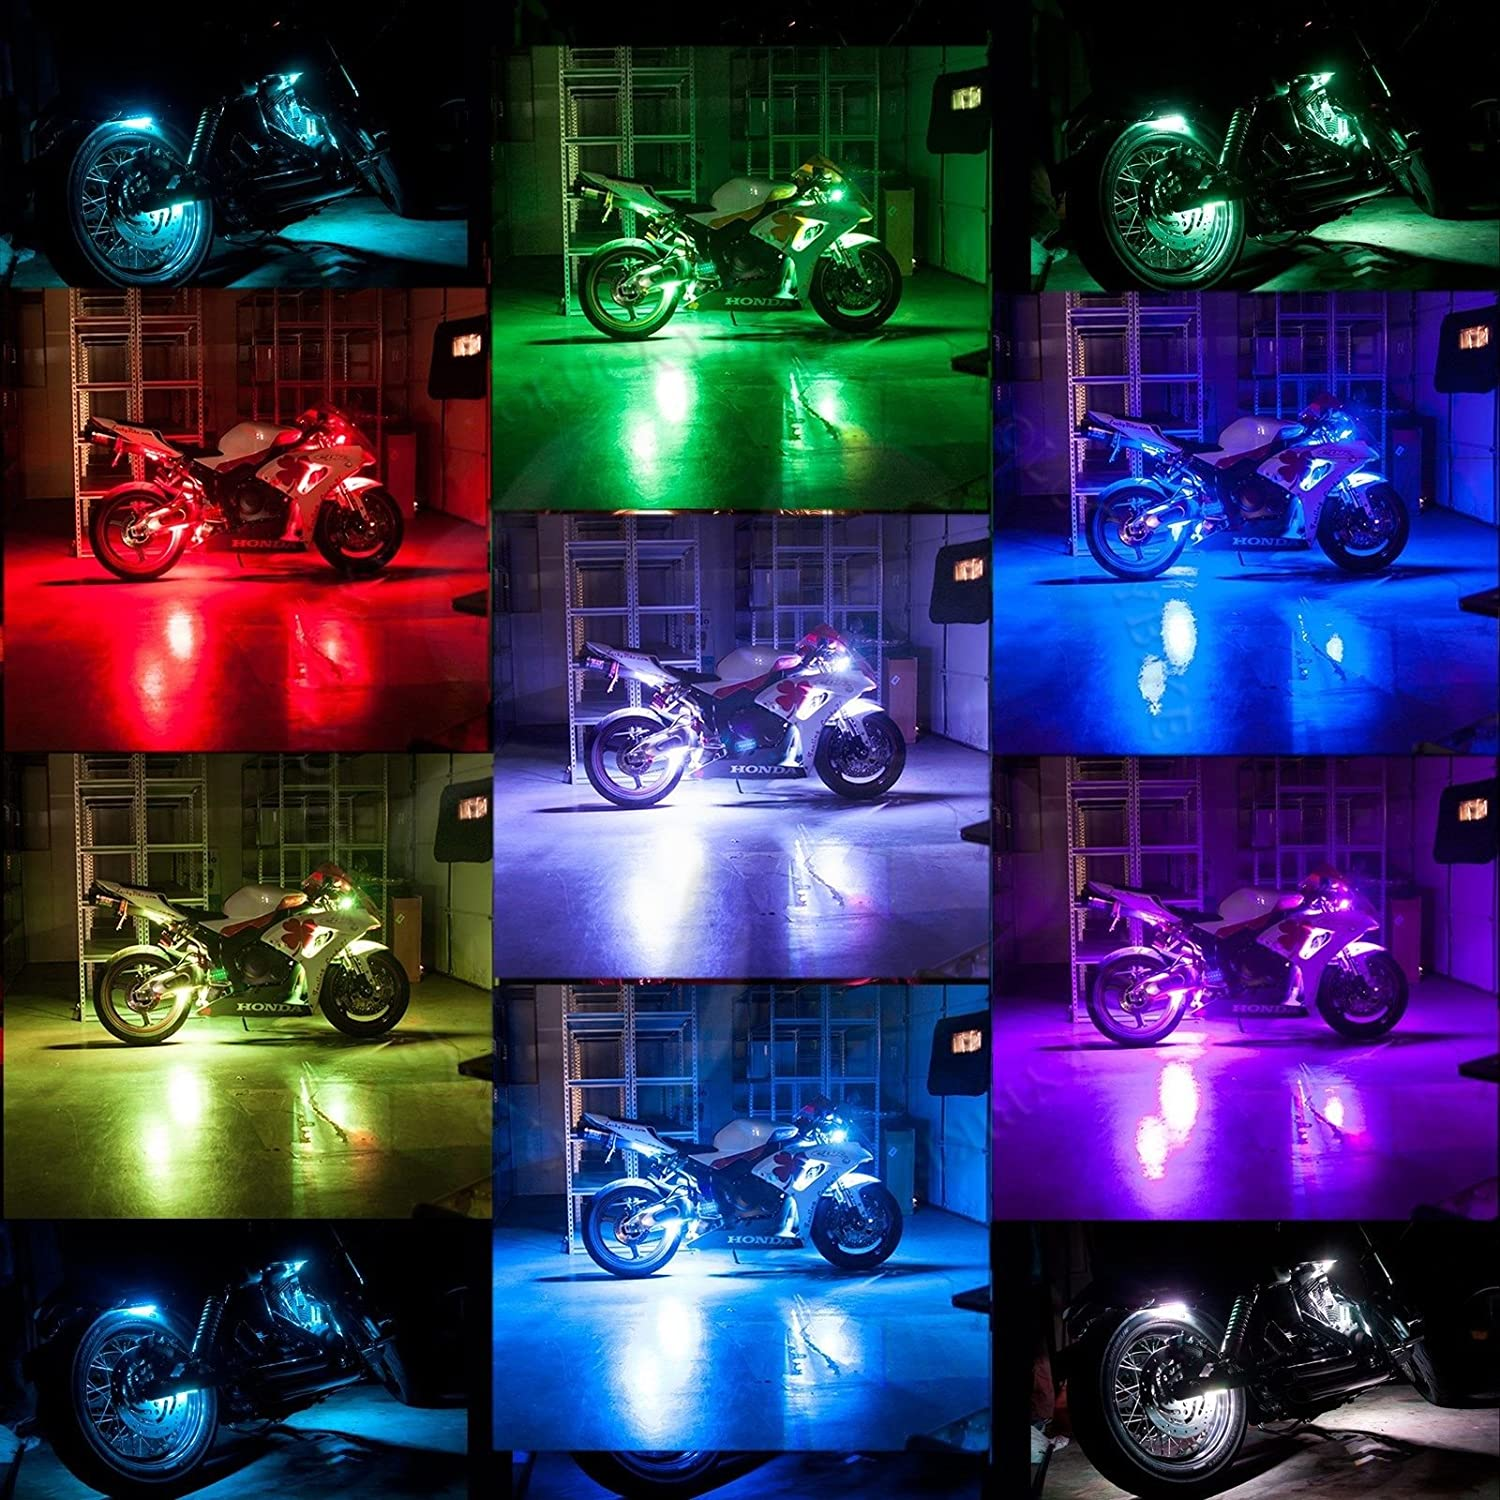 motorcycle h scootlights products com halo lighting lights passing fog led